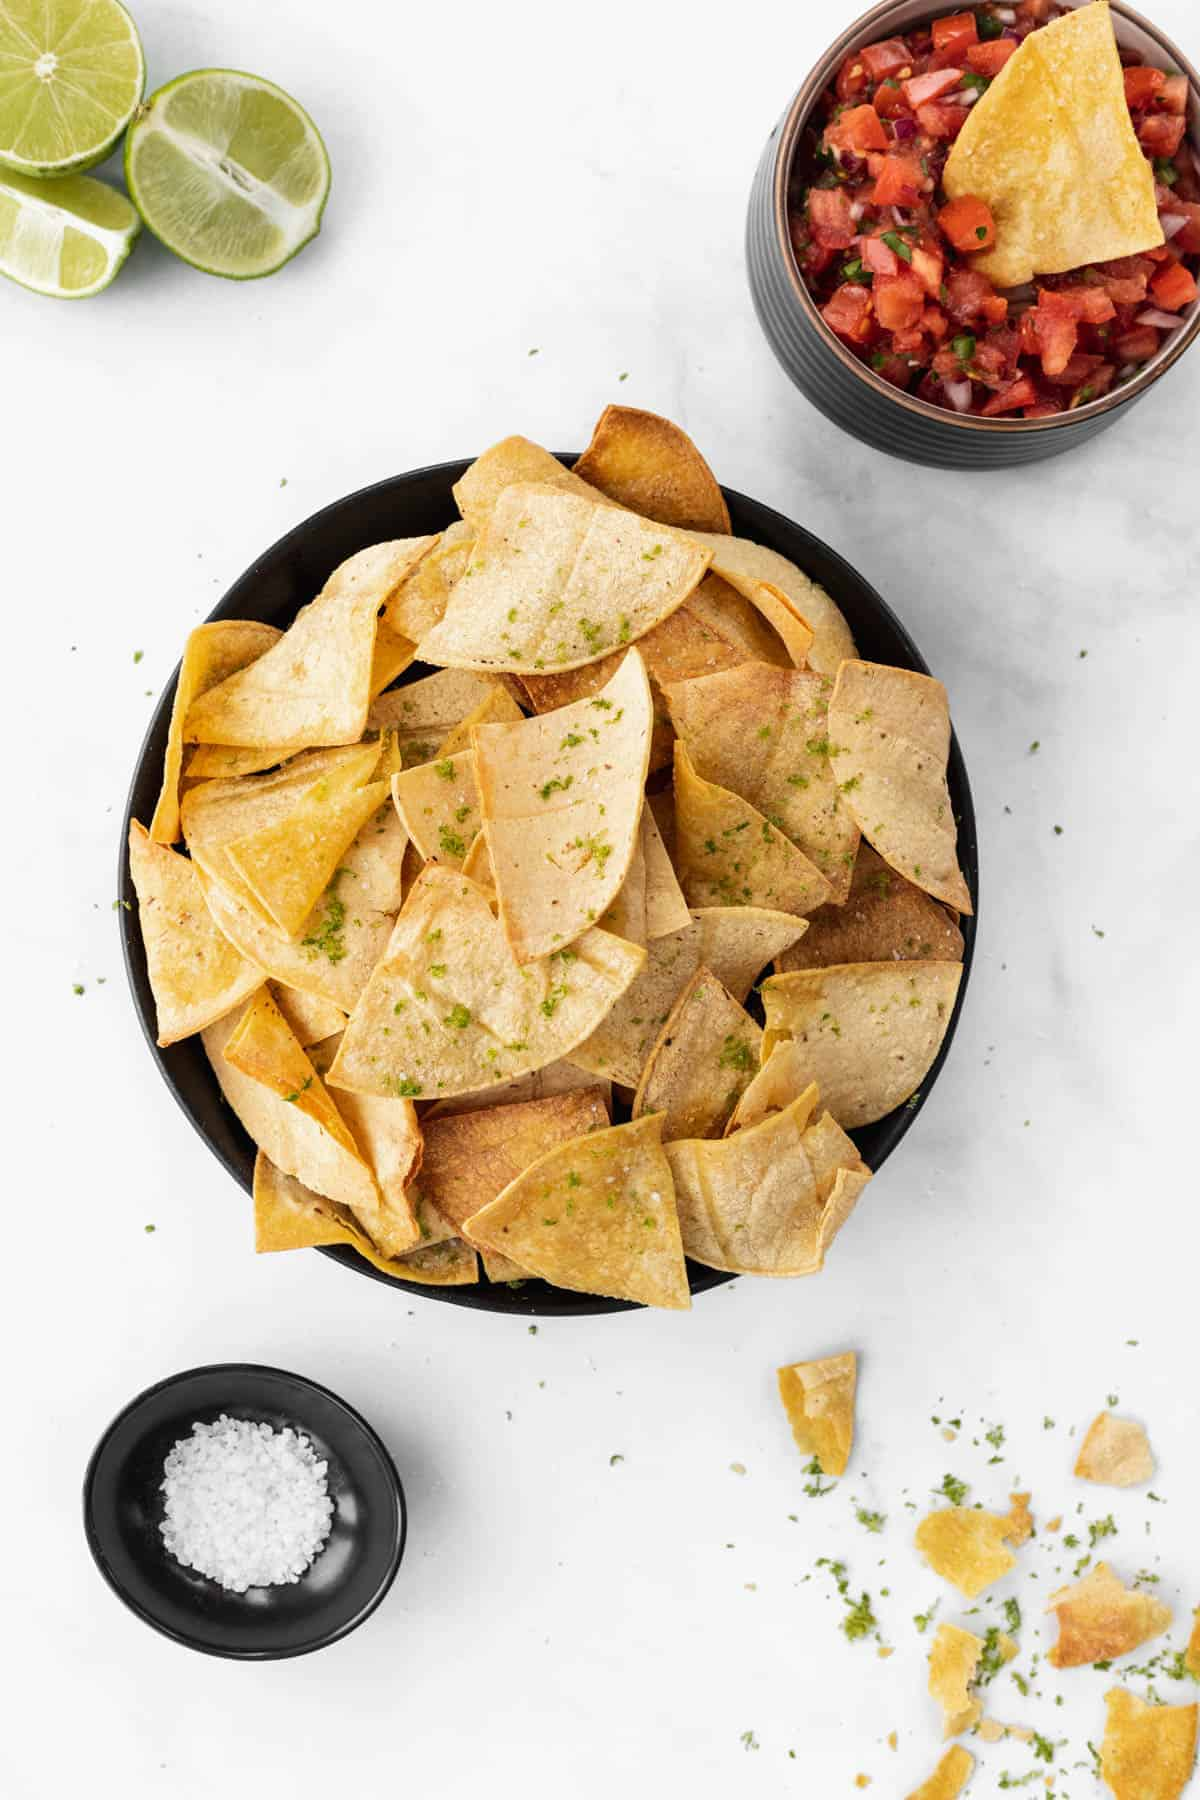 Air fryer tortilla chips in a black bowl with sea salt, limes, and a chip dipped in a bowl of salsa around it.